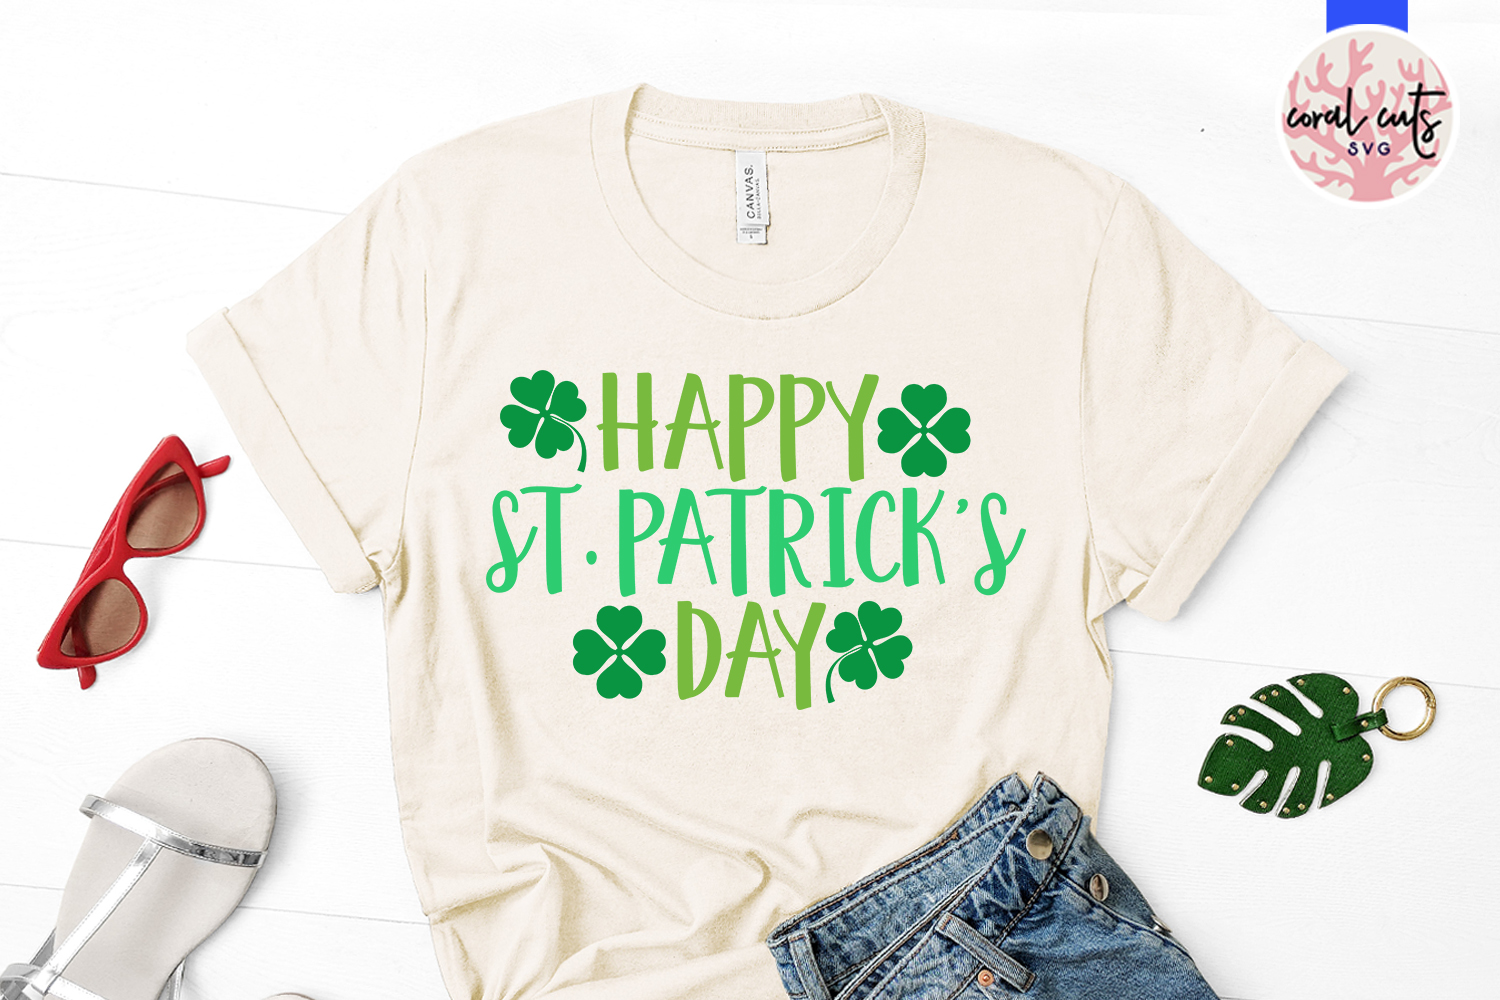 Happy st. patrick's day - St. Patrick's Day SVG EPS DXF PNG example image 2